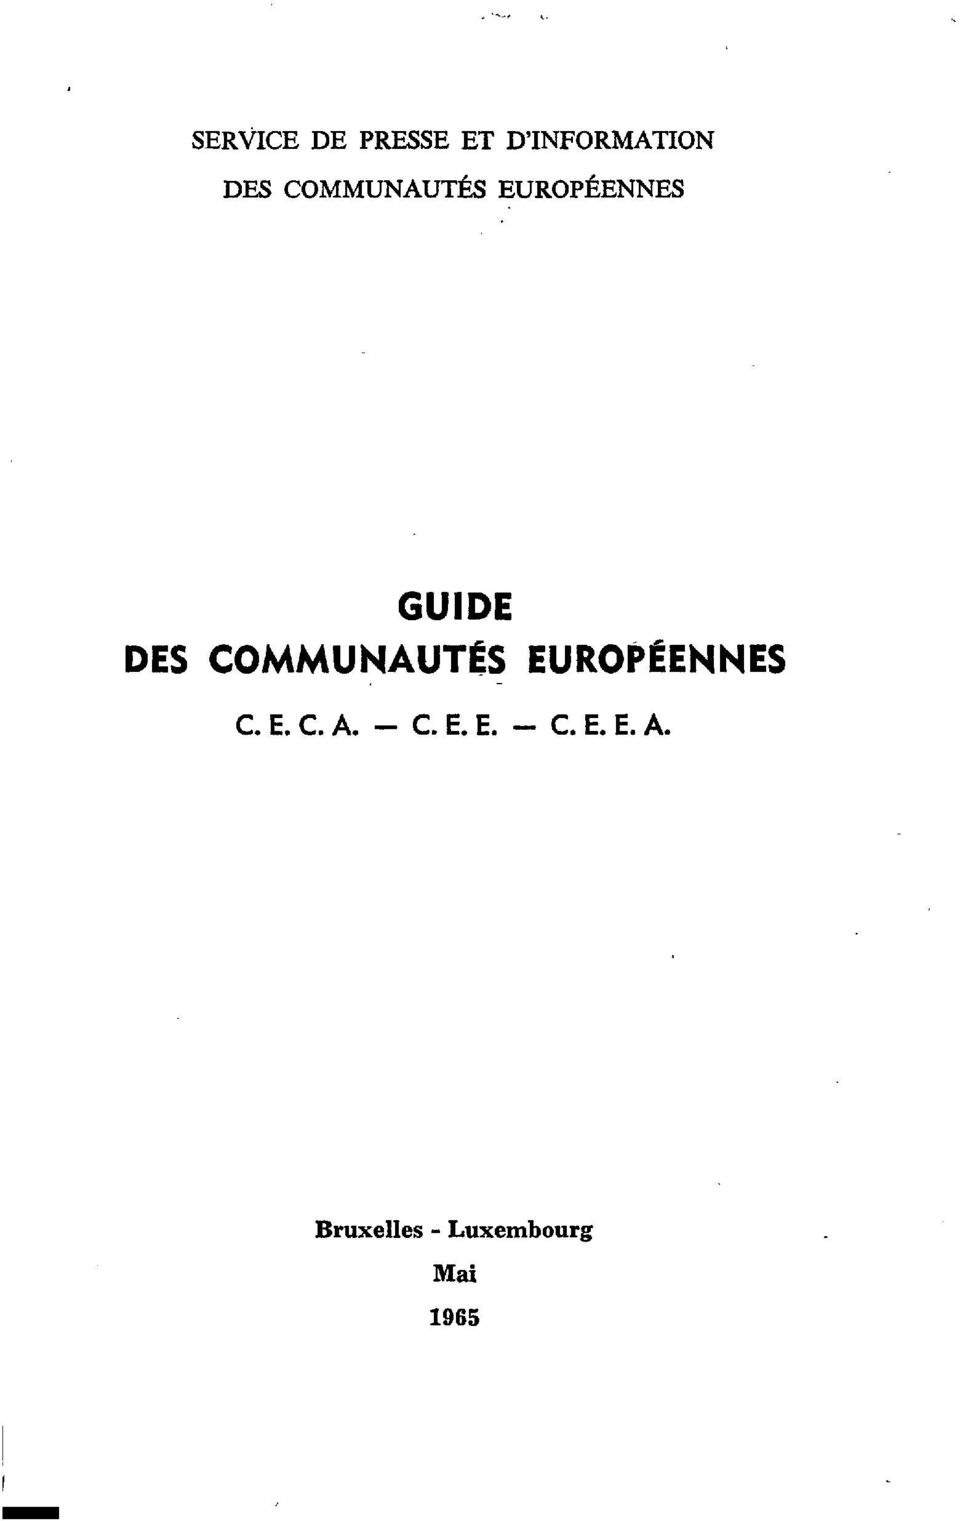 - C. E. E. - C. E. E. A. librarr EUROPEAN CO M MUNITY I.